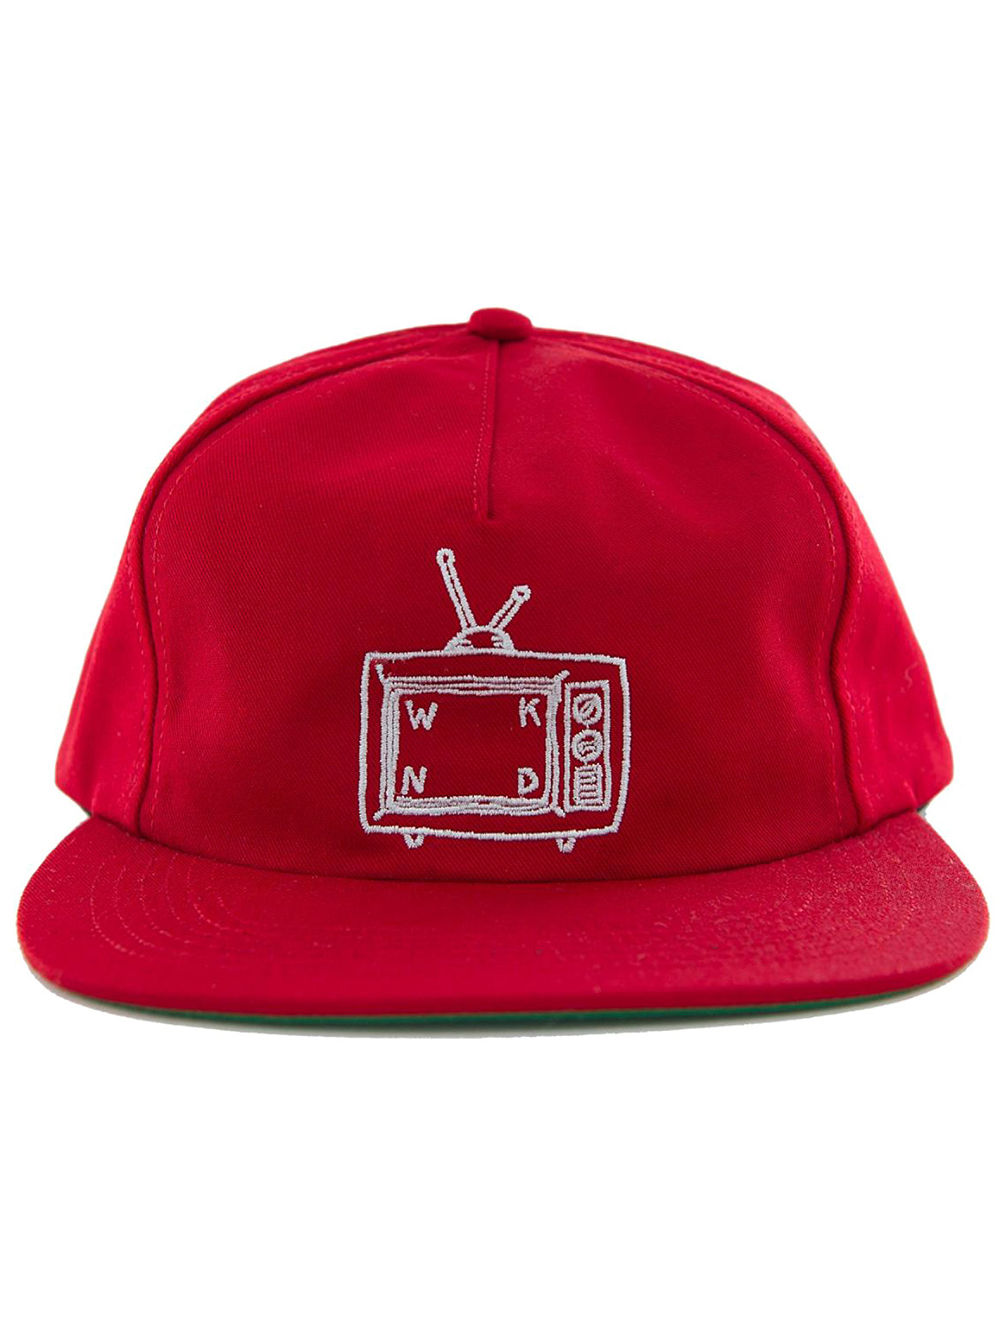 Tv Logo Caps